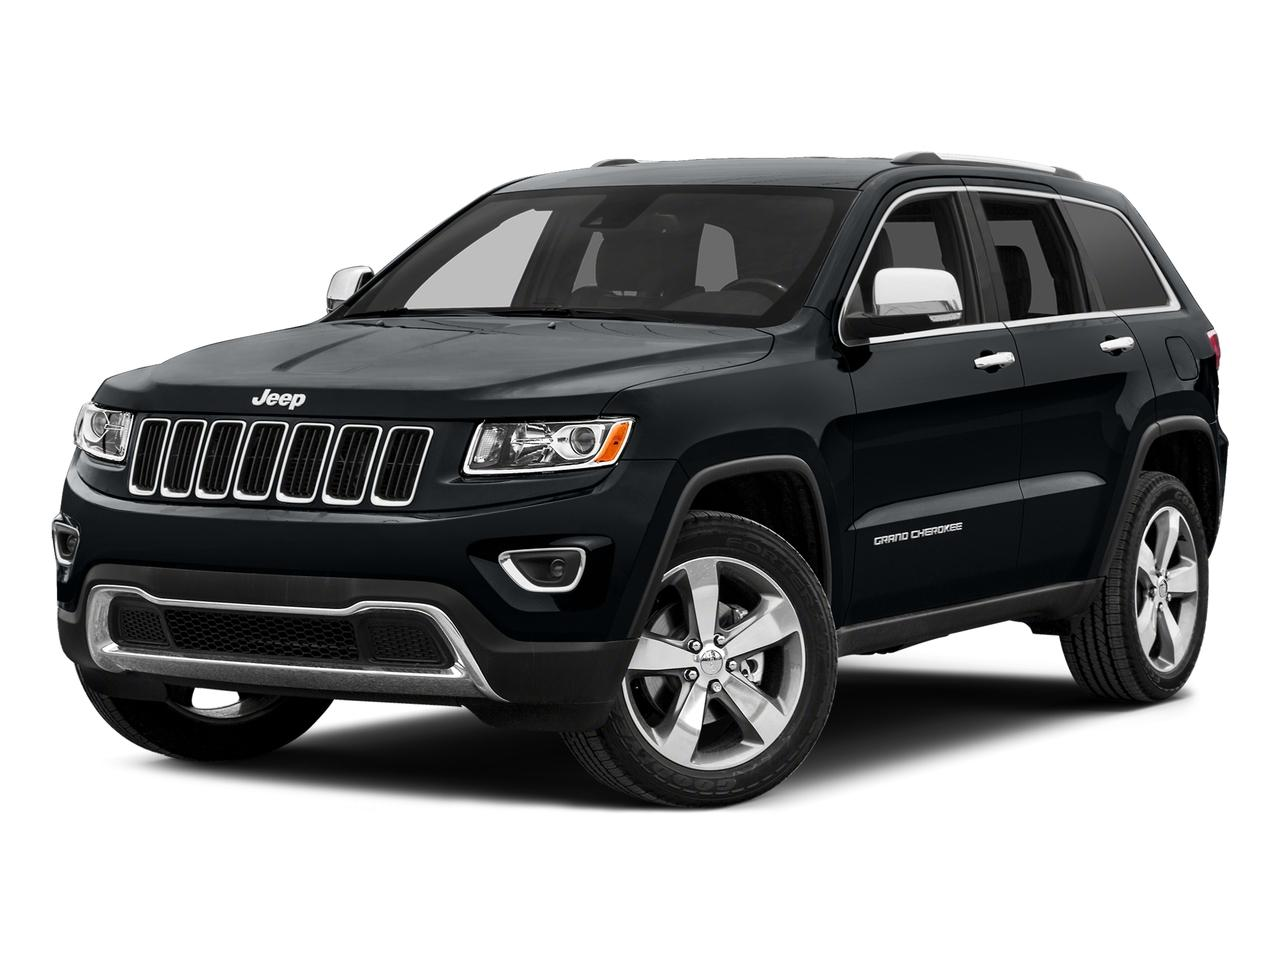 2015 Jeep Grand Cherokee Vehicle Photo in Plainfield, IL 60586